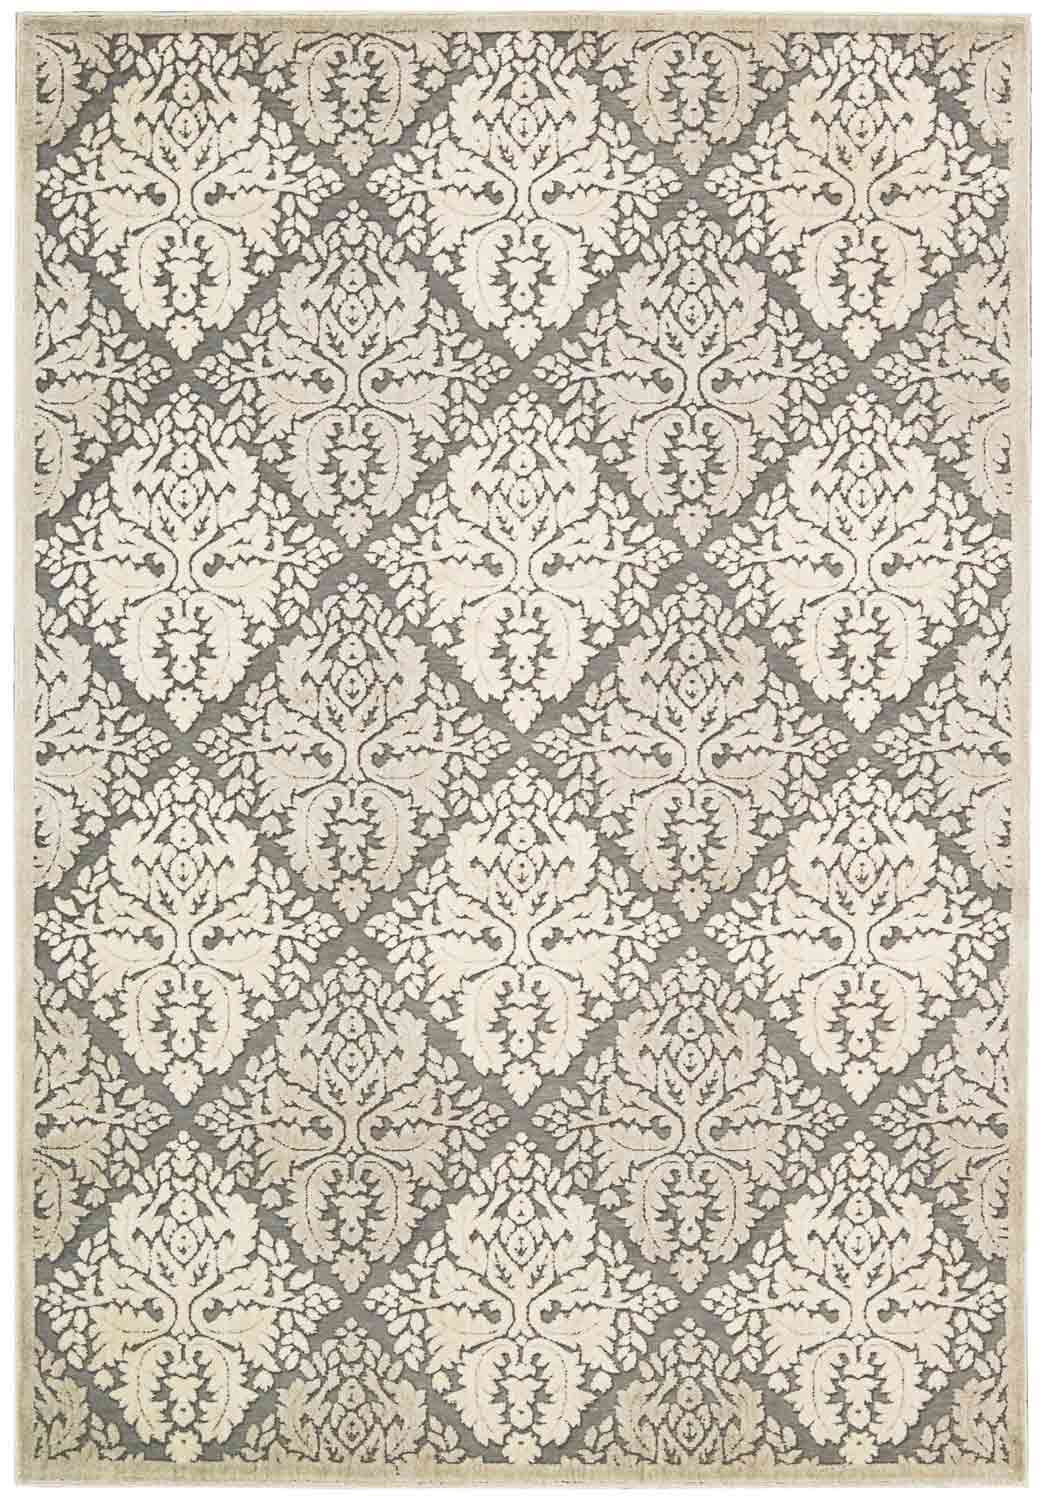 Nourison Graphic Illusions GIL08 Ivory Area Rug